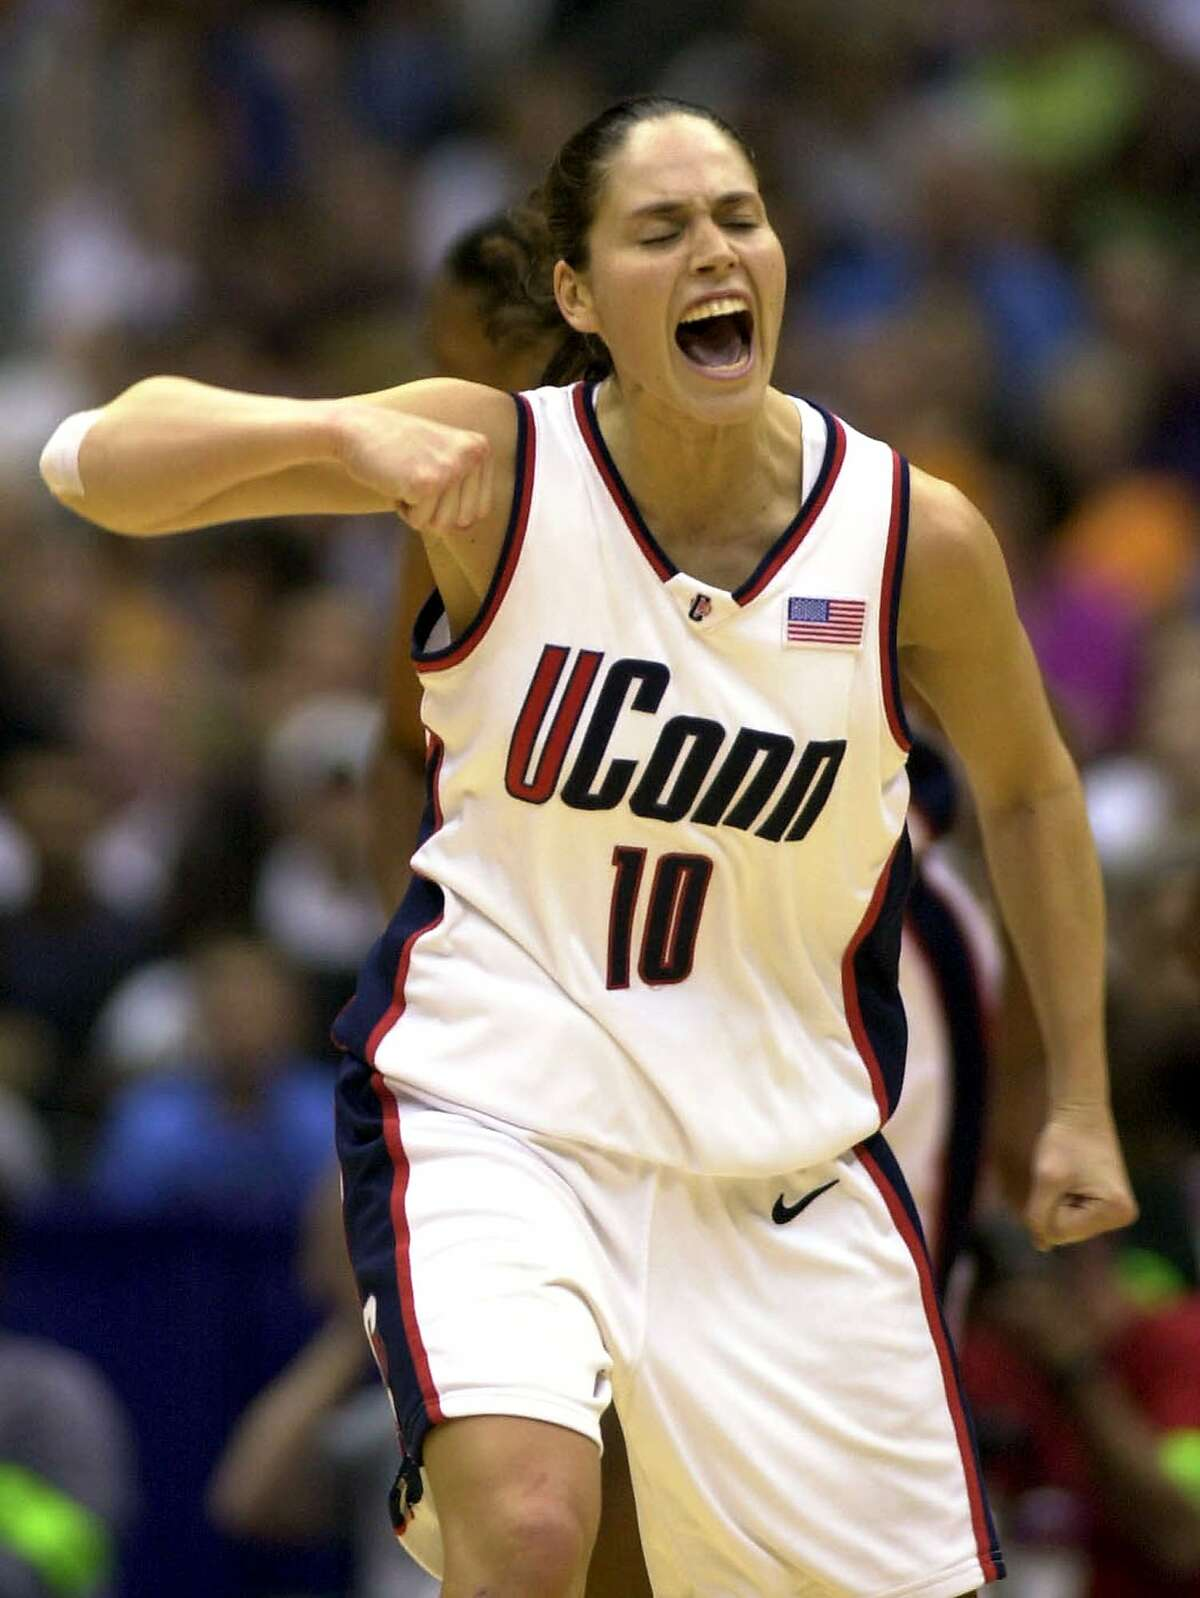 THEN During her four years (1999-02) at UConn, the Huskies posted a 136-9 record (.938), played in four NCAA Tournaments, won a pair of NCAA crowns (2000, 2002), advanced to the 2001 Final Four and earned four Big East Conference regular season and tournament titles. - usab.comPictured: Connecticut guard Sue Bird screams after a team scoring run in the second half against Tennessee, Friday, March 29, 2002, during a semifinal game at the NCAA Women's Final Four in San Antonio. (AP Photo/Eric Gay)